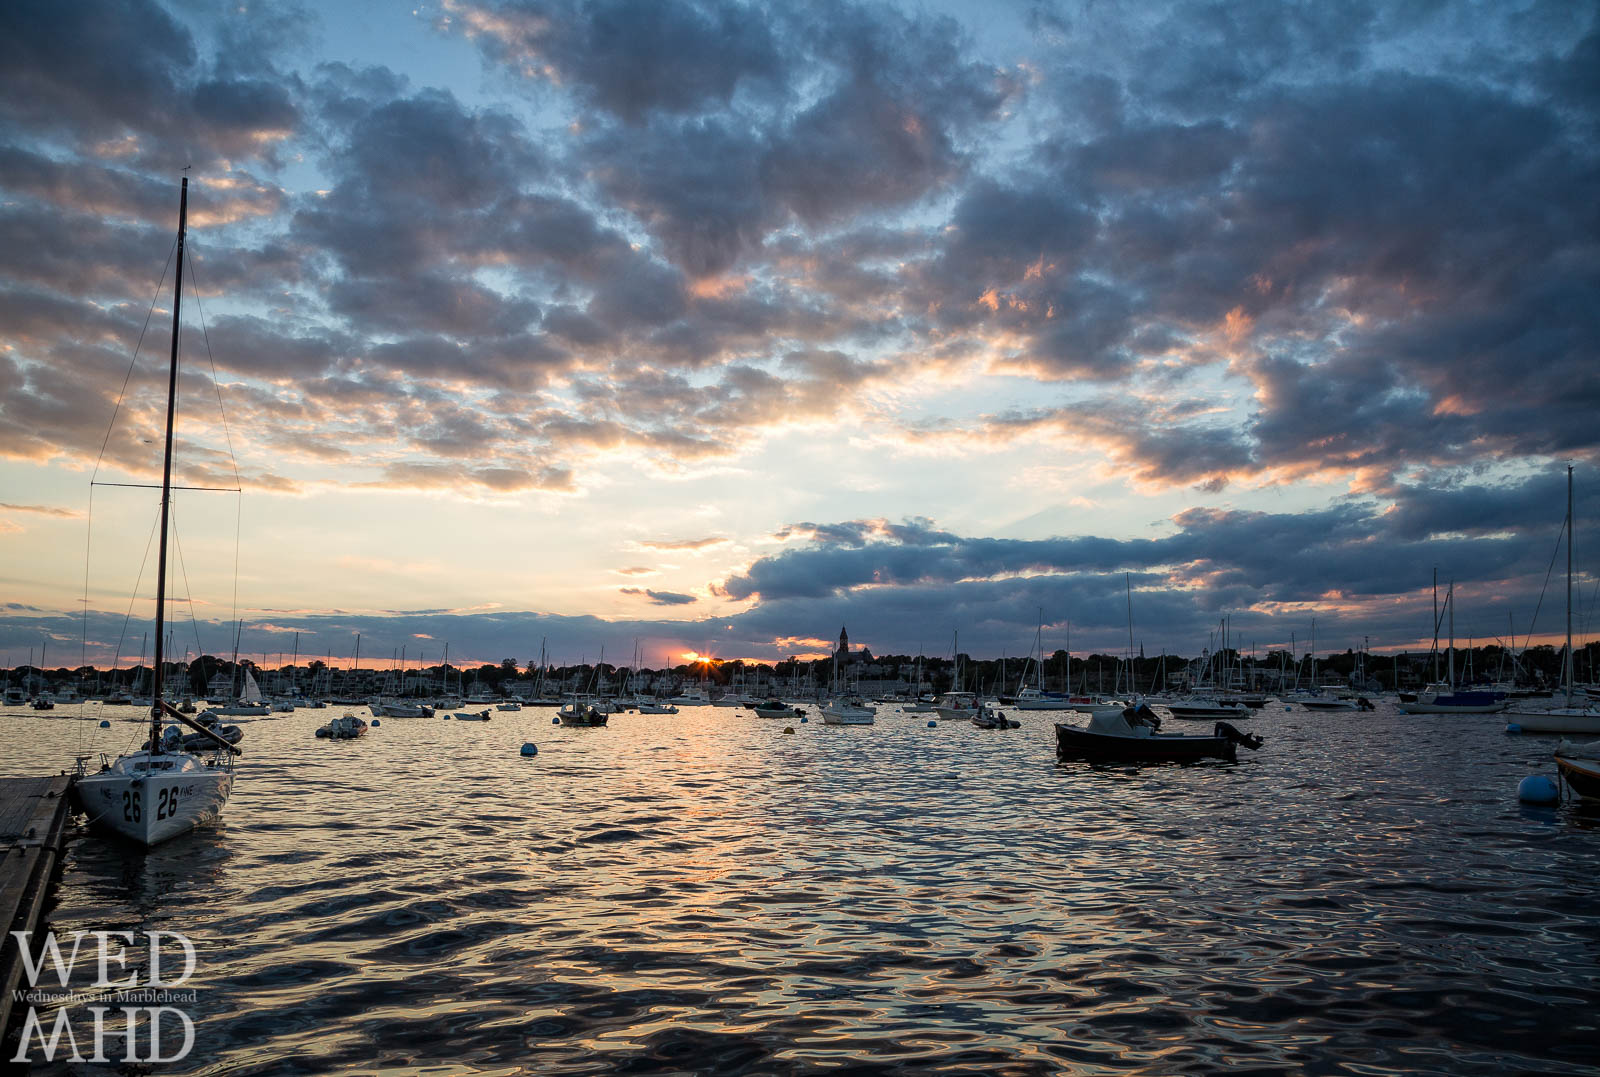 A view from water level captures the last rays of light over Marblehead Harbor with boats in their moorings and clouds reflecting the light of sunset